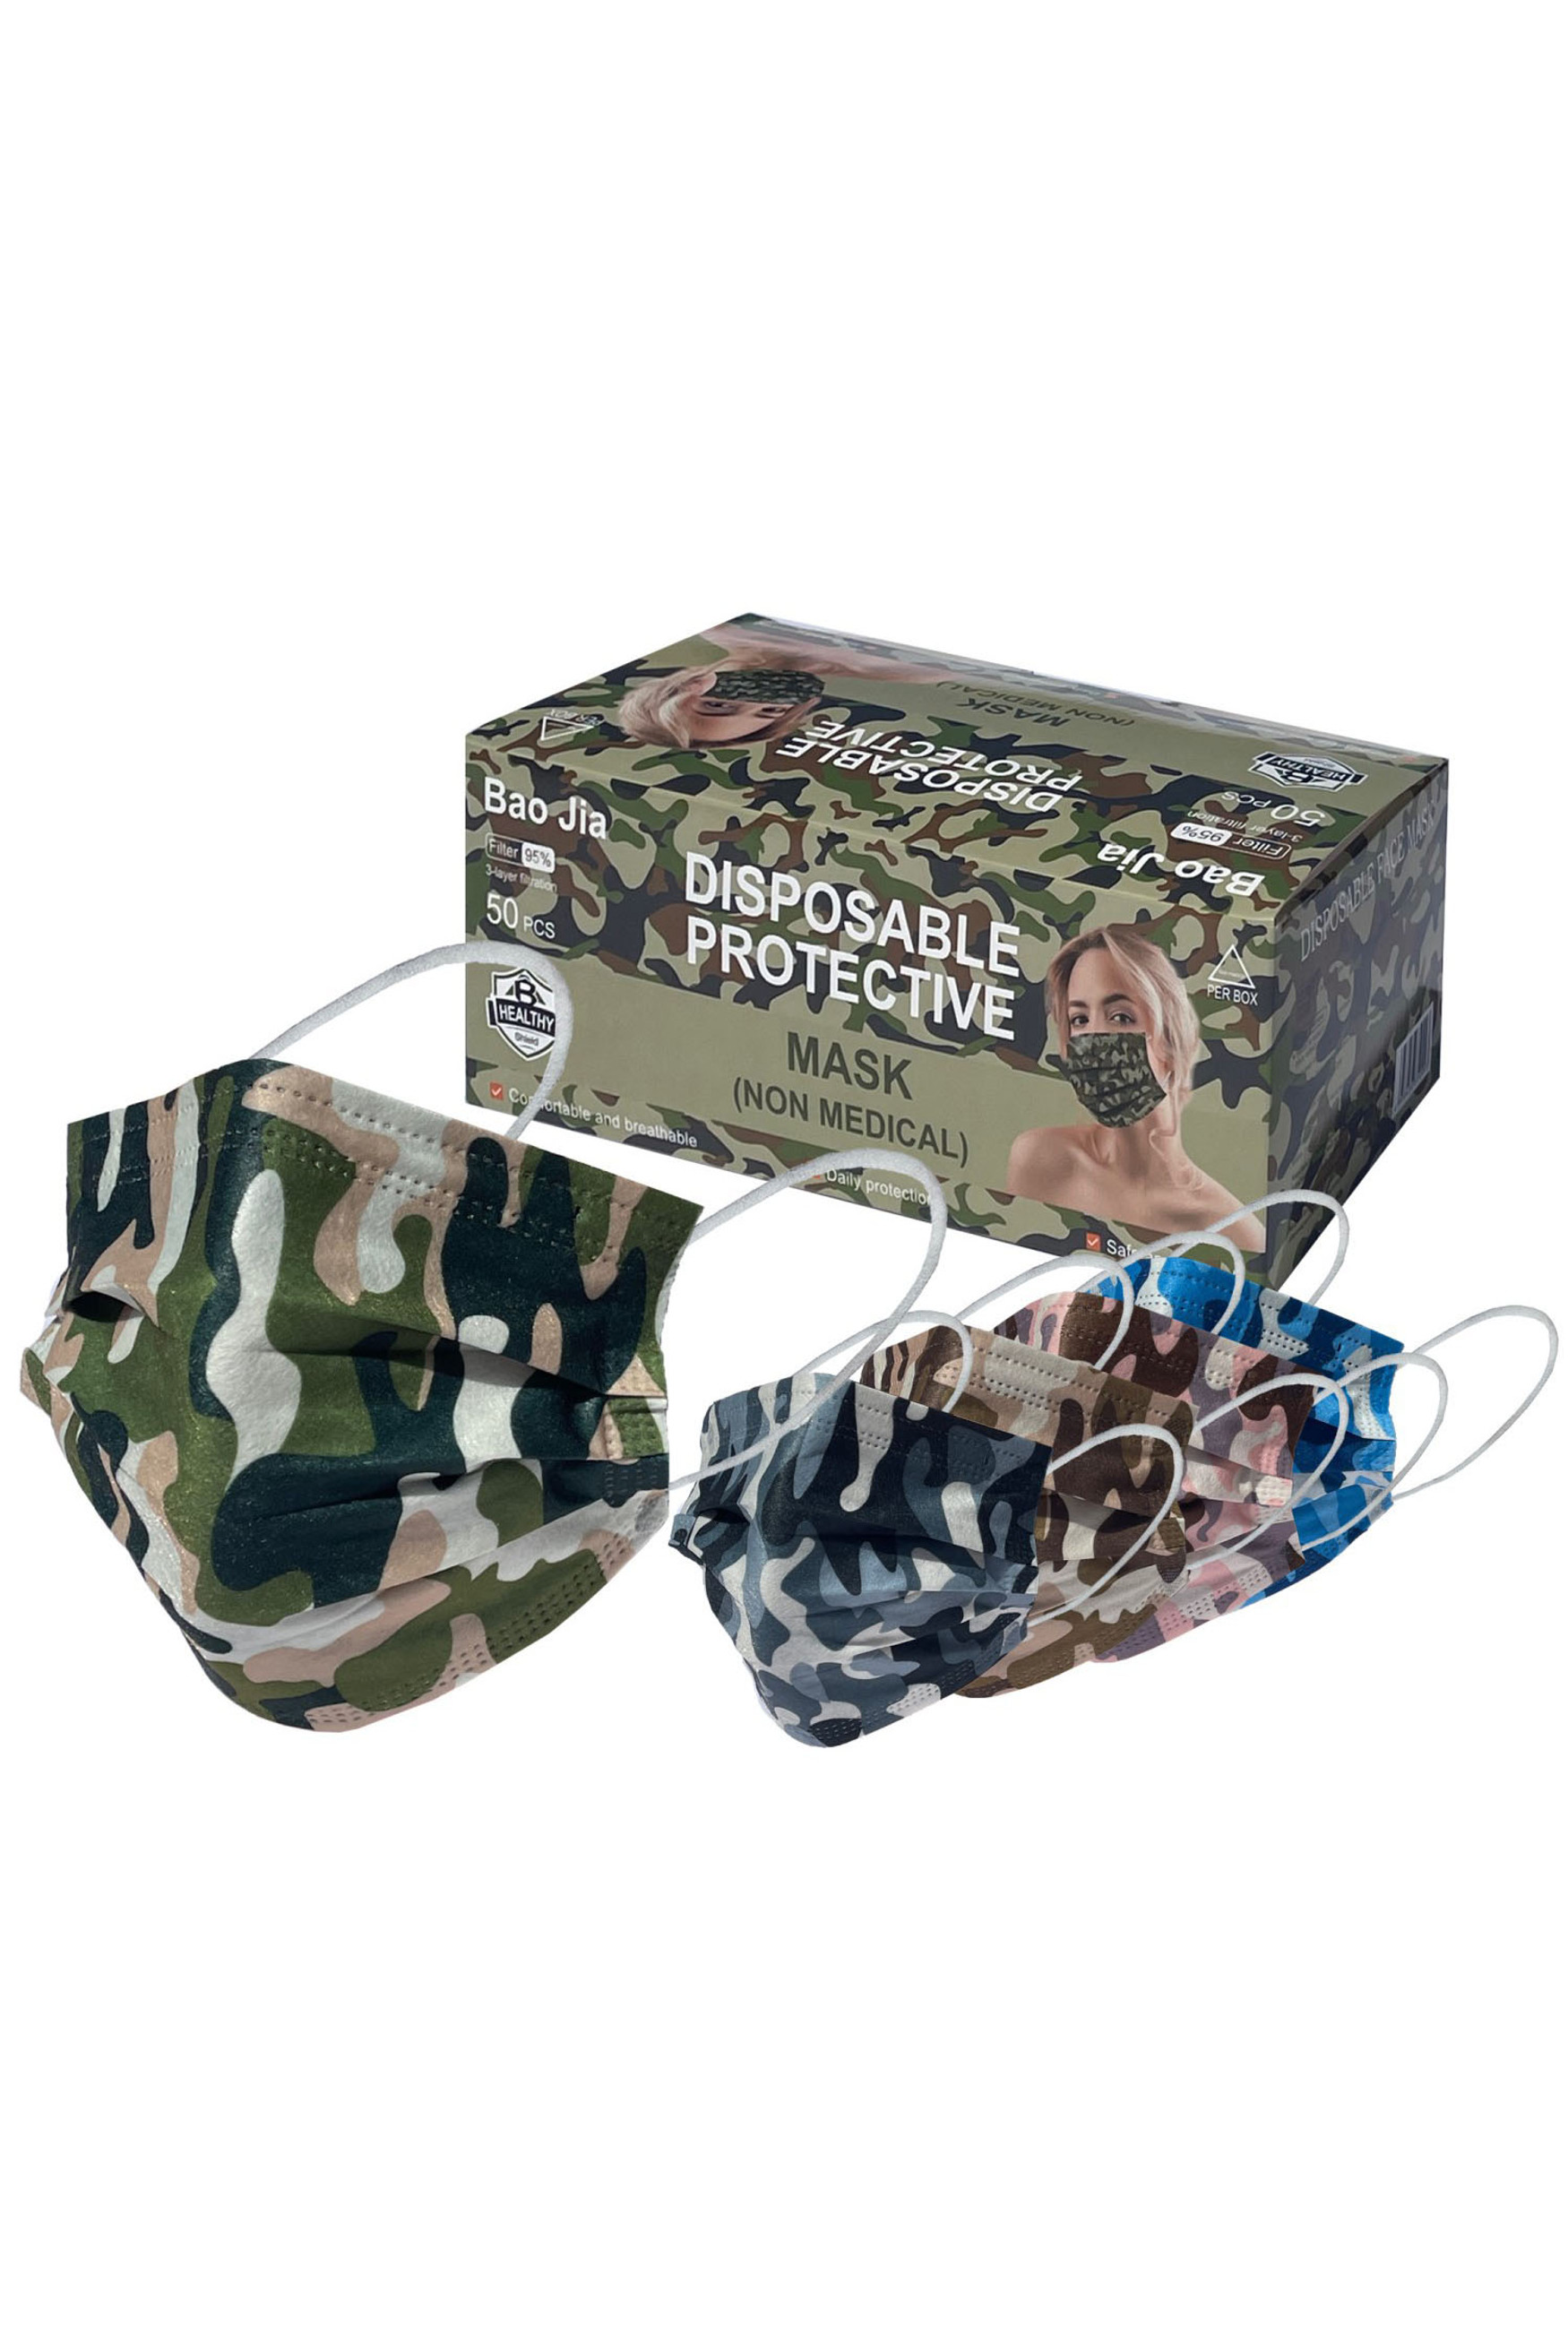 Camouflage Disposable Surgical Face Mask - 50 Pack - 5 Styles